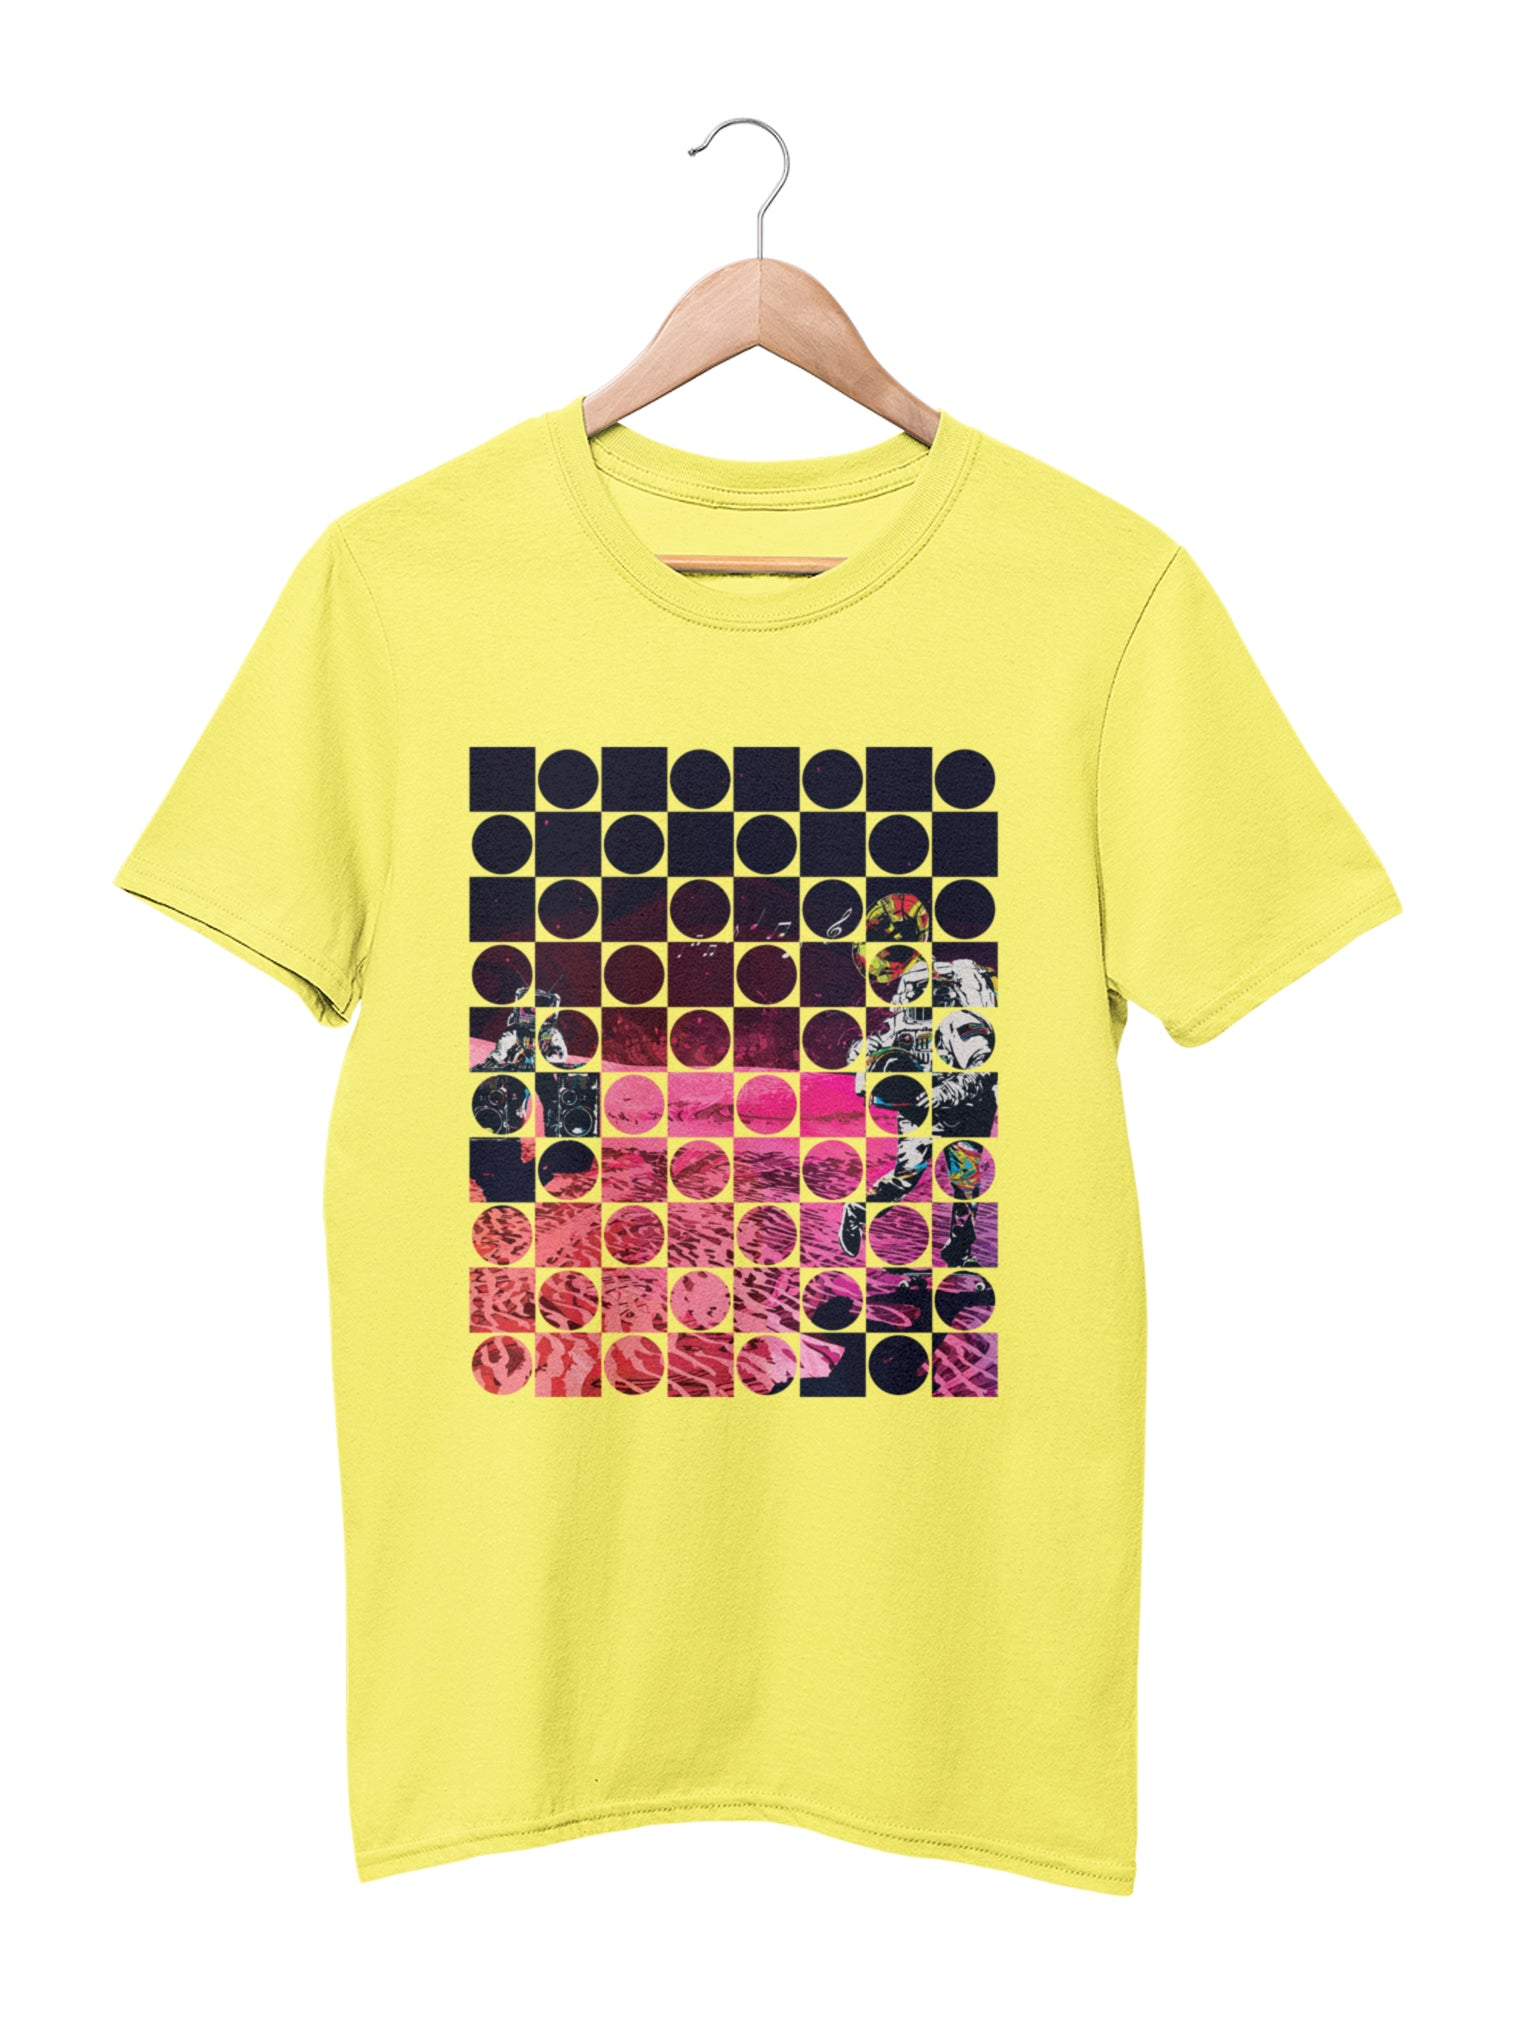 T-shirt with space motif